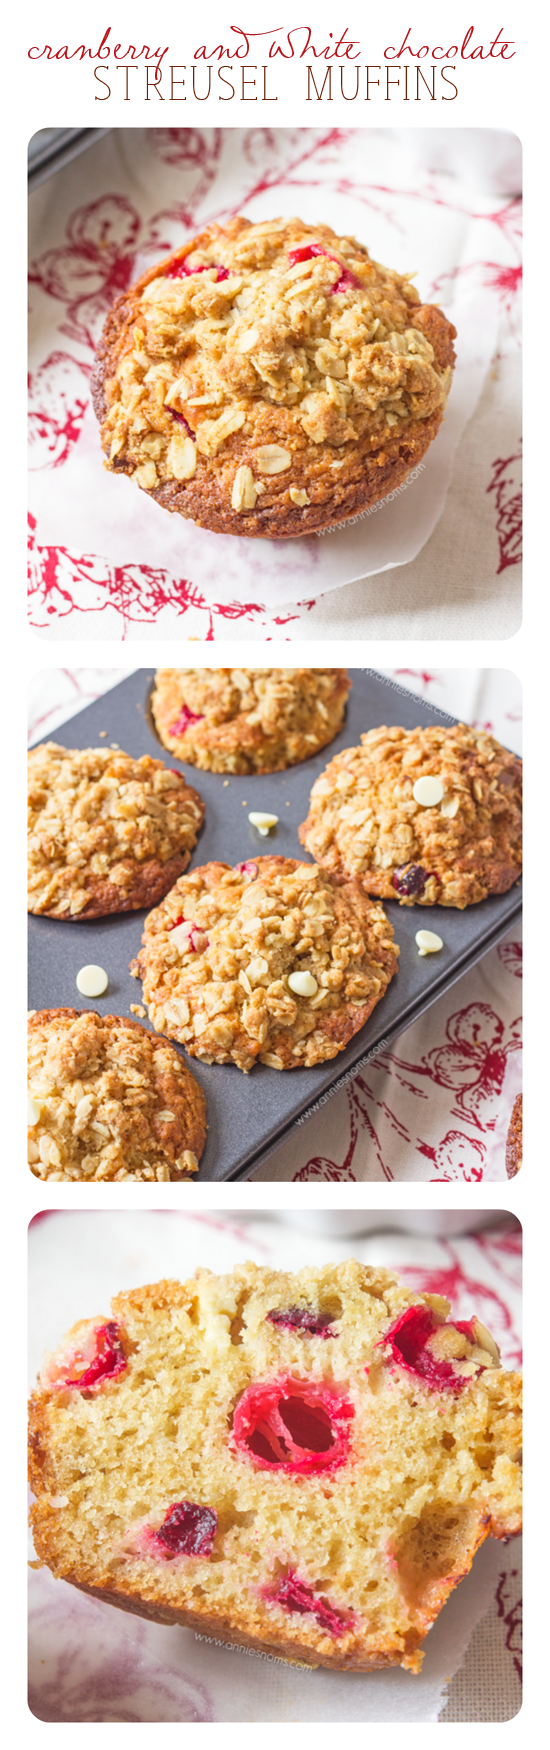 Cranberry and White Chocolate Streusel Muffins - These Cranberry and White Chocolate Streusel Muffins are soft, tender and packed with oozing white chocolate and tart fresh cranberries. Finished off with a crunchy oat streusel, these are just perfect for an afternoon snack.